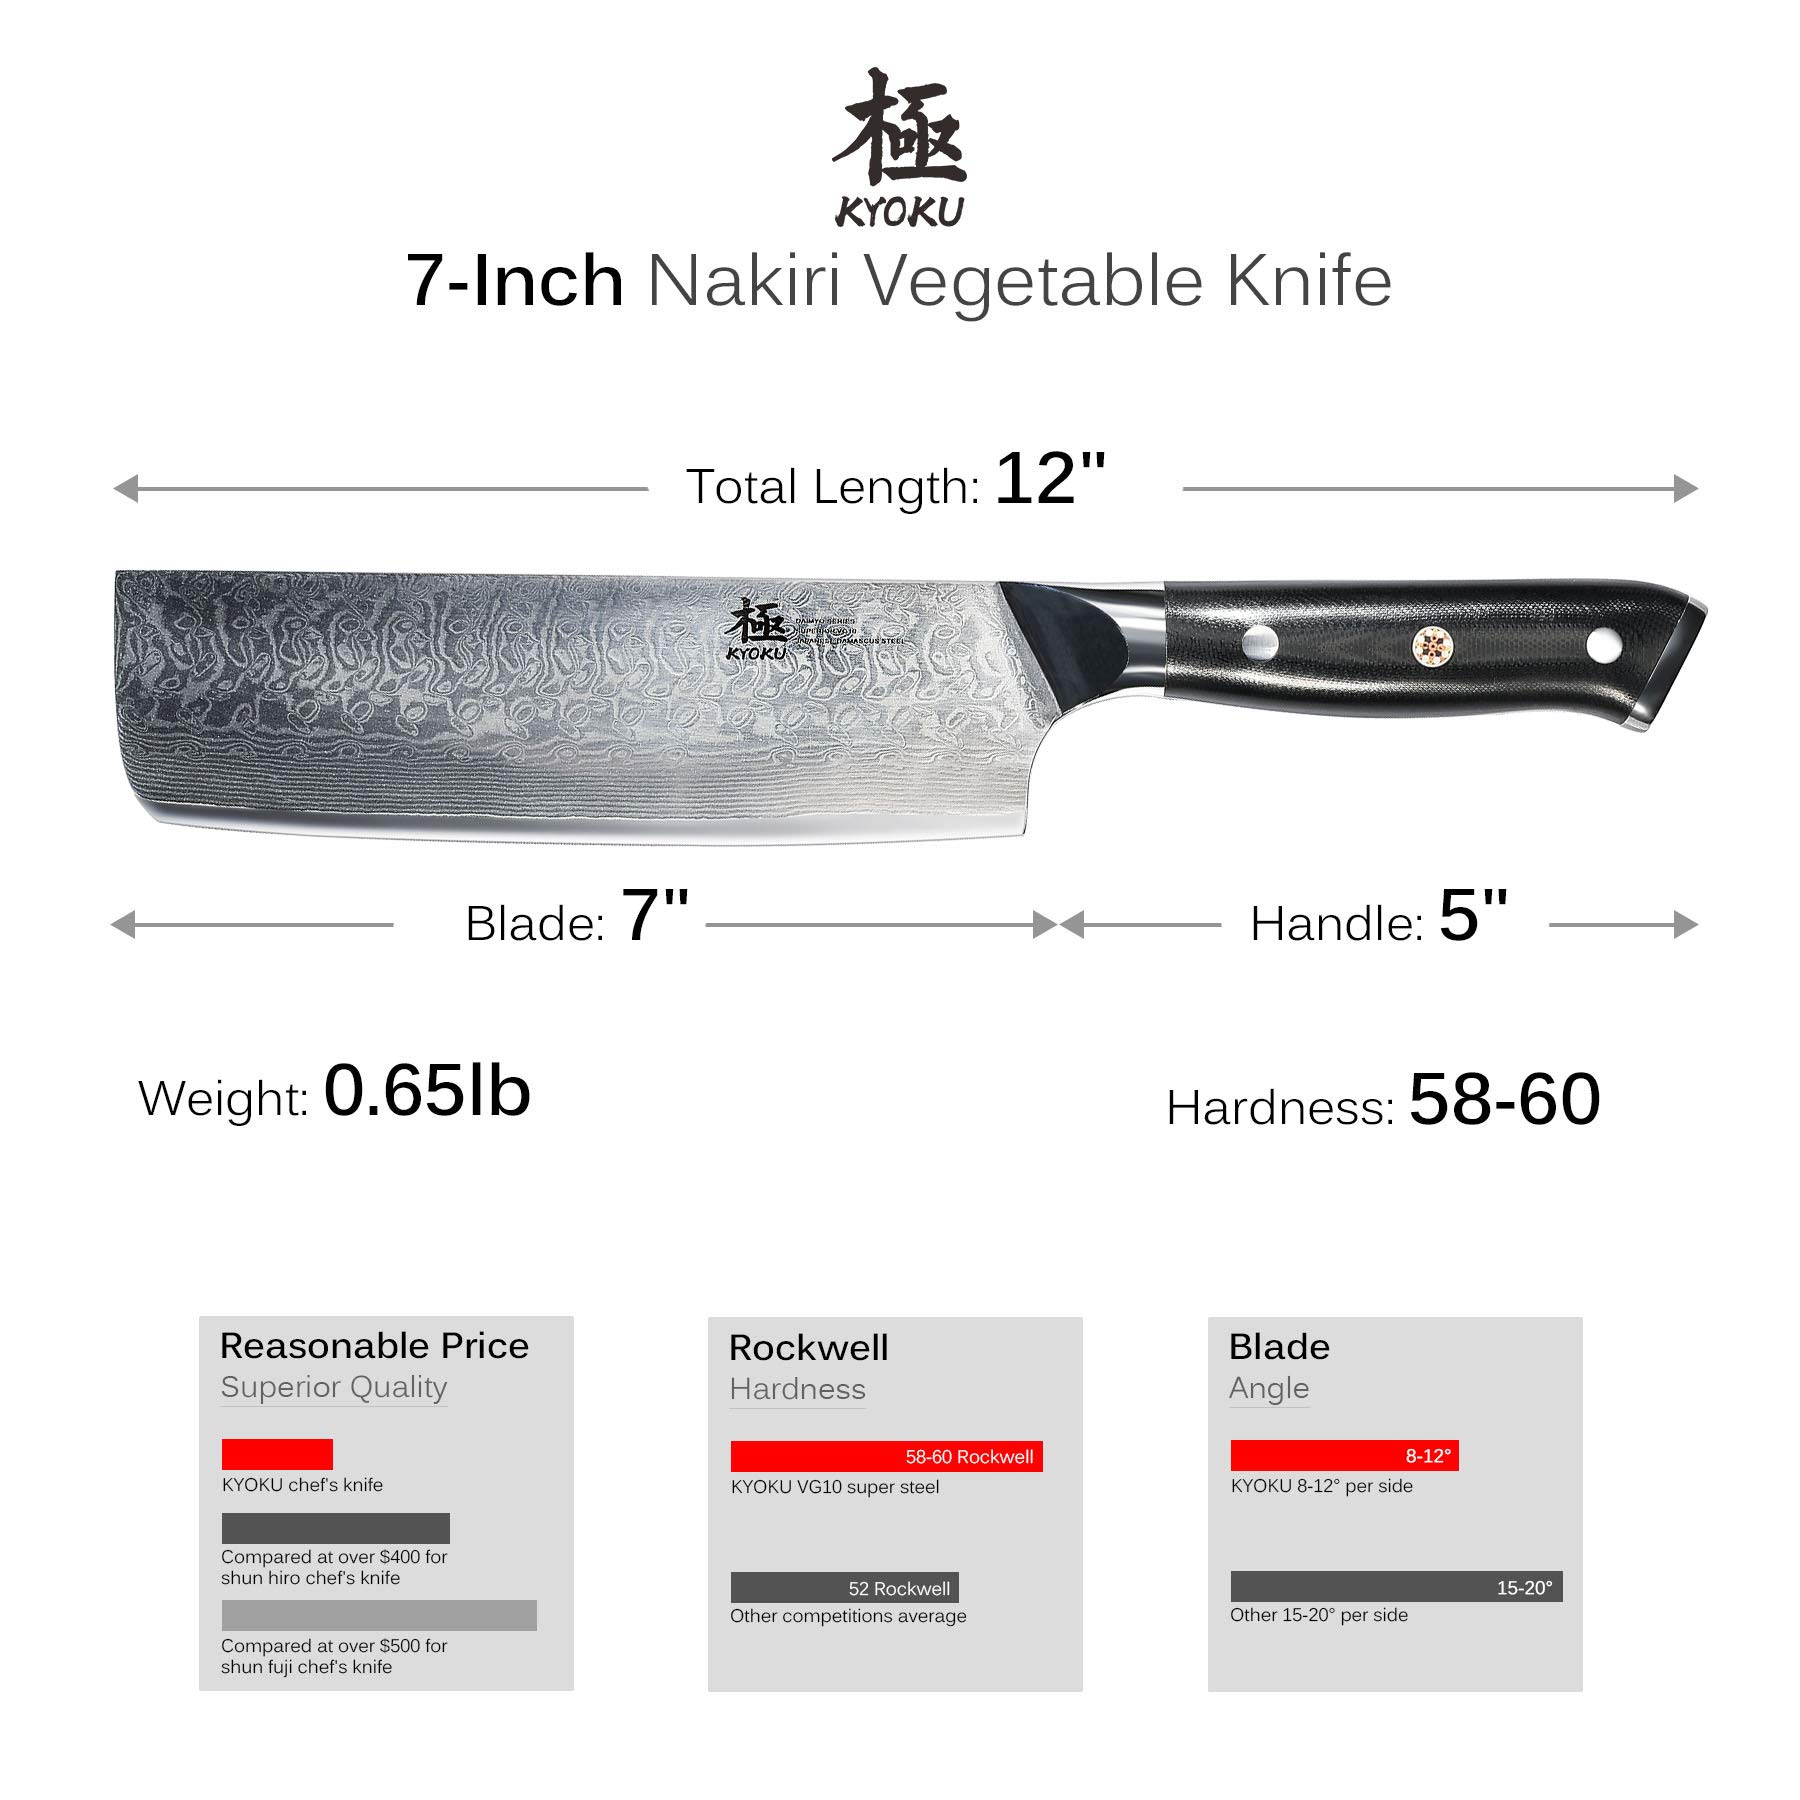 KYOKU Daimyo Series - 6-Inch Nakiri Vegetable Chef Knife with Sheath Case - Japanese VG10 Steel Core 67-Layer Forged Damascus Blade - Full Tang - G10 Handle with Mosaic Pin by KYOKU (Image #4)